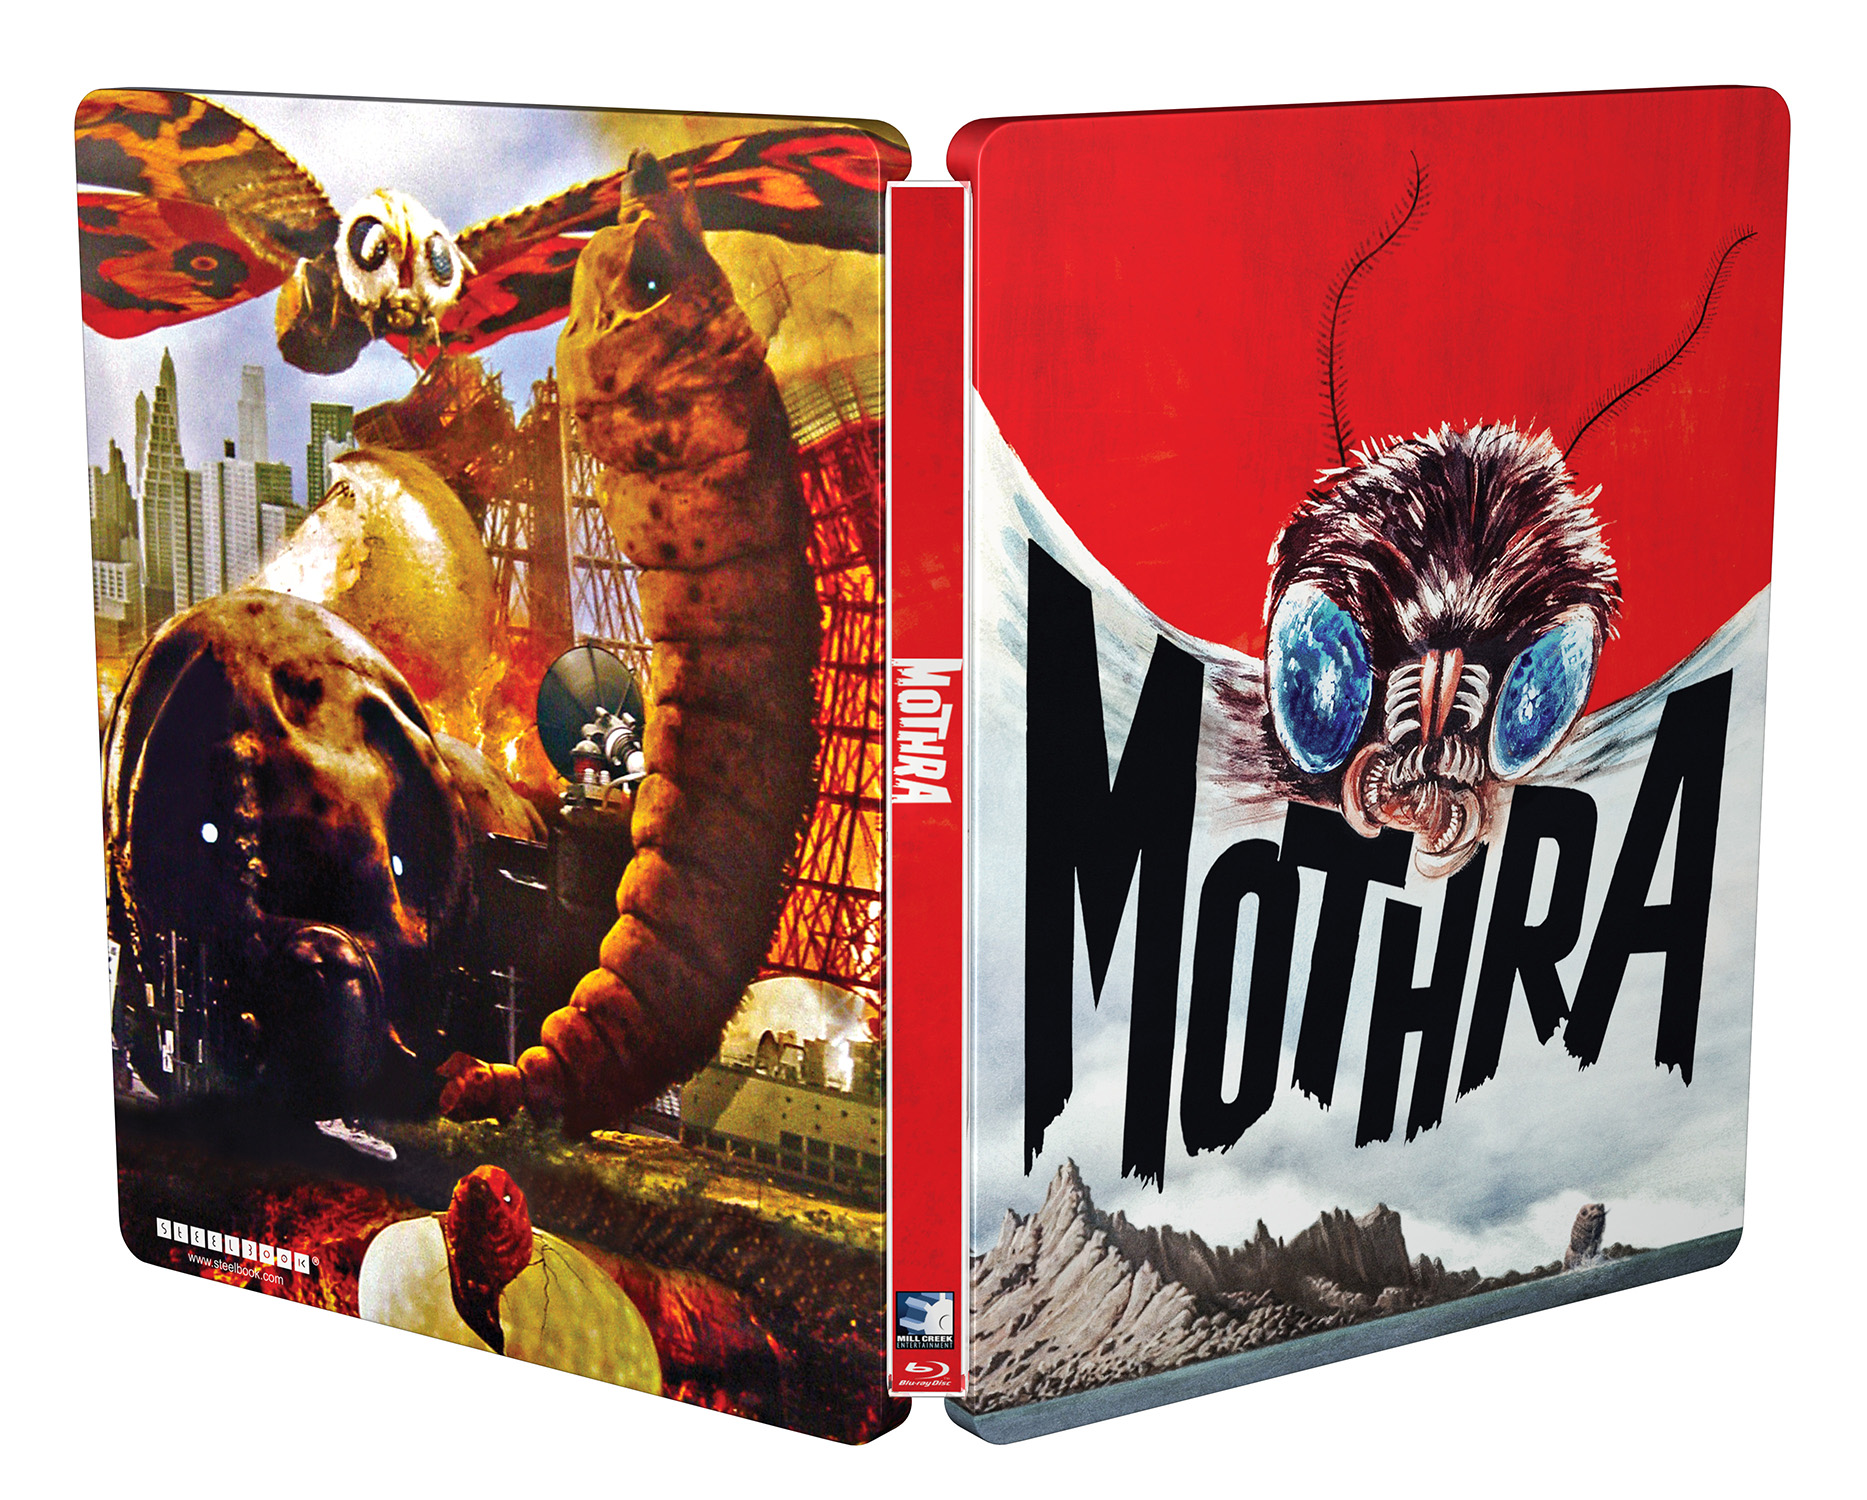 MothraSteelbook02.jpg